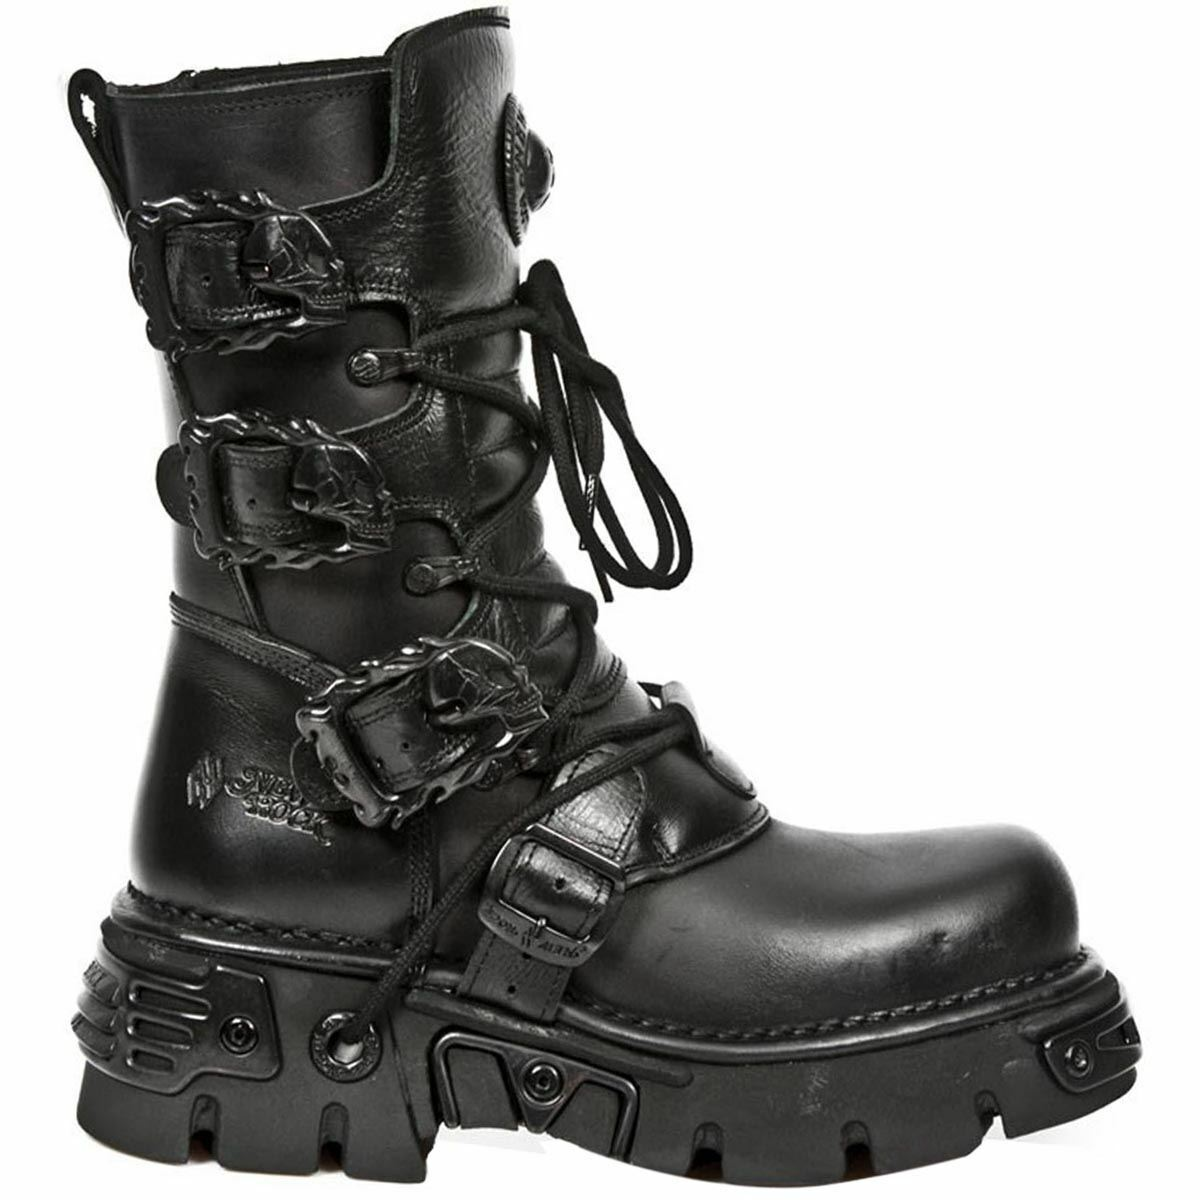 New Rock Oxido M 391 Gothic Black Womens Boots